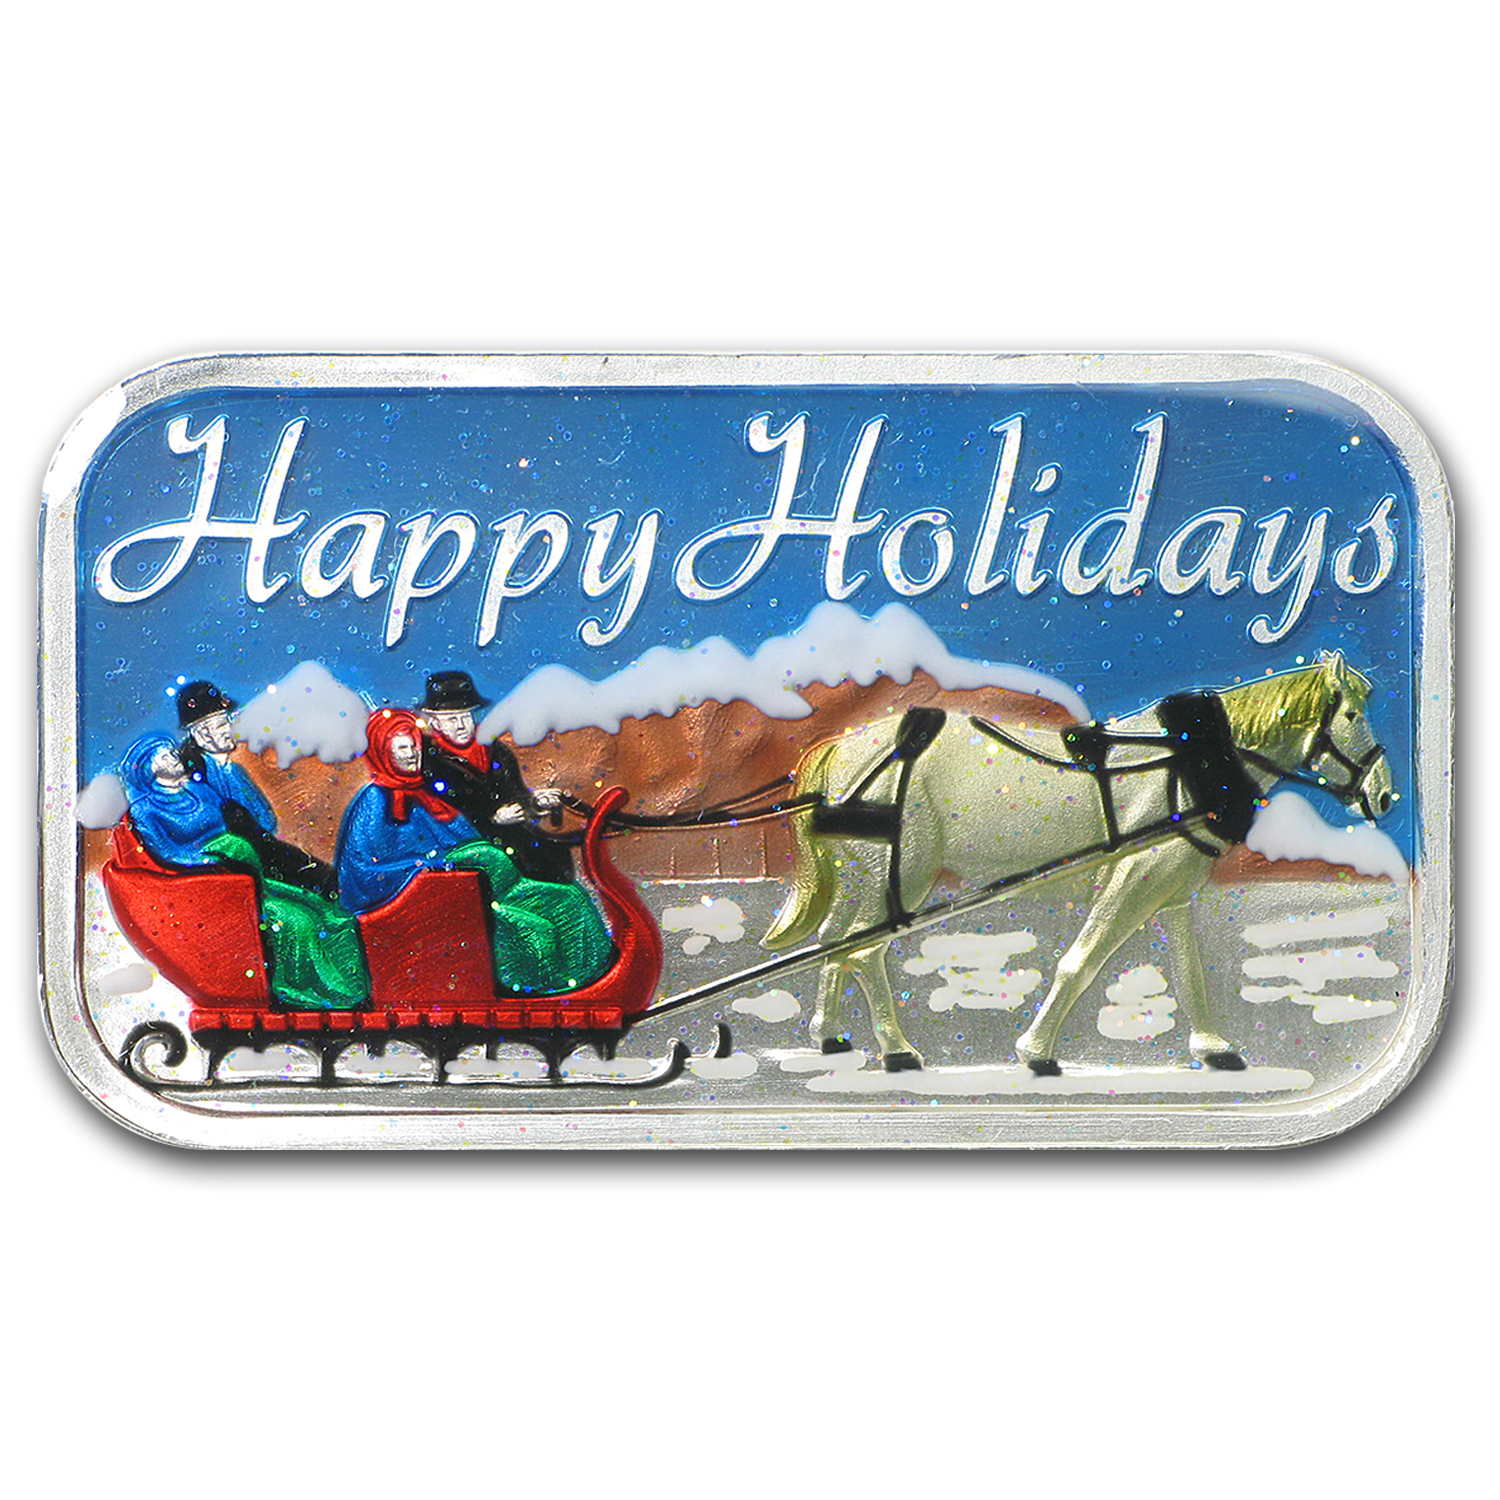 1 oz Silver Bar - 2015 Happy Holiday (Enameled)